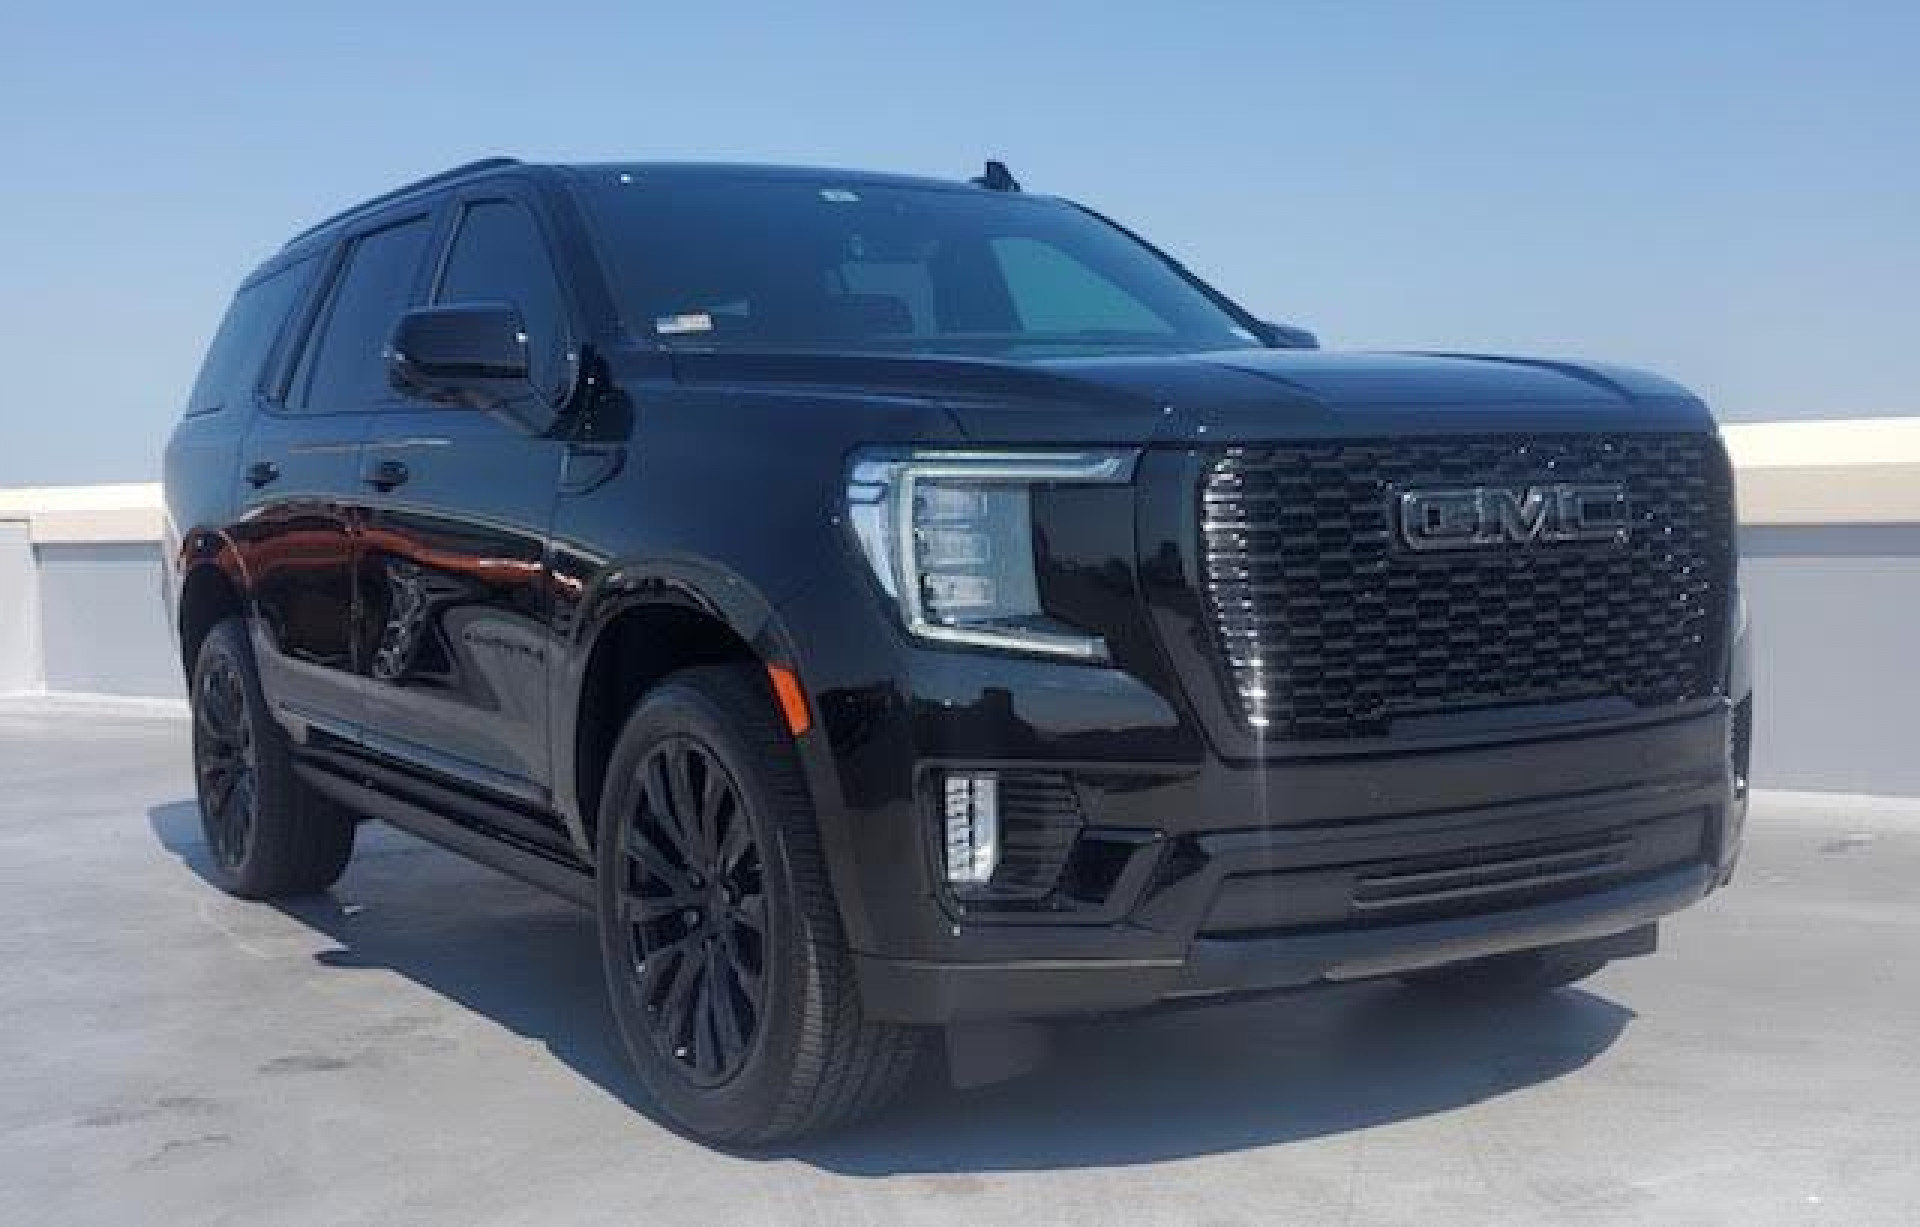 2021 GMC Yukon fully blacked out